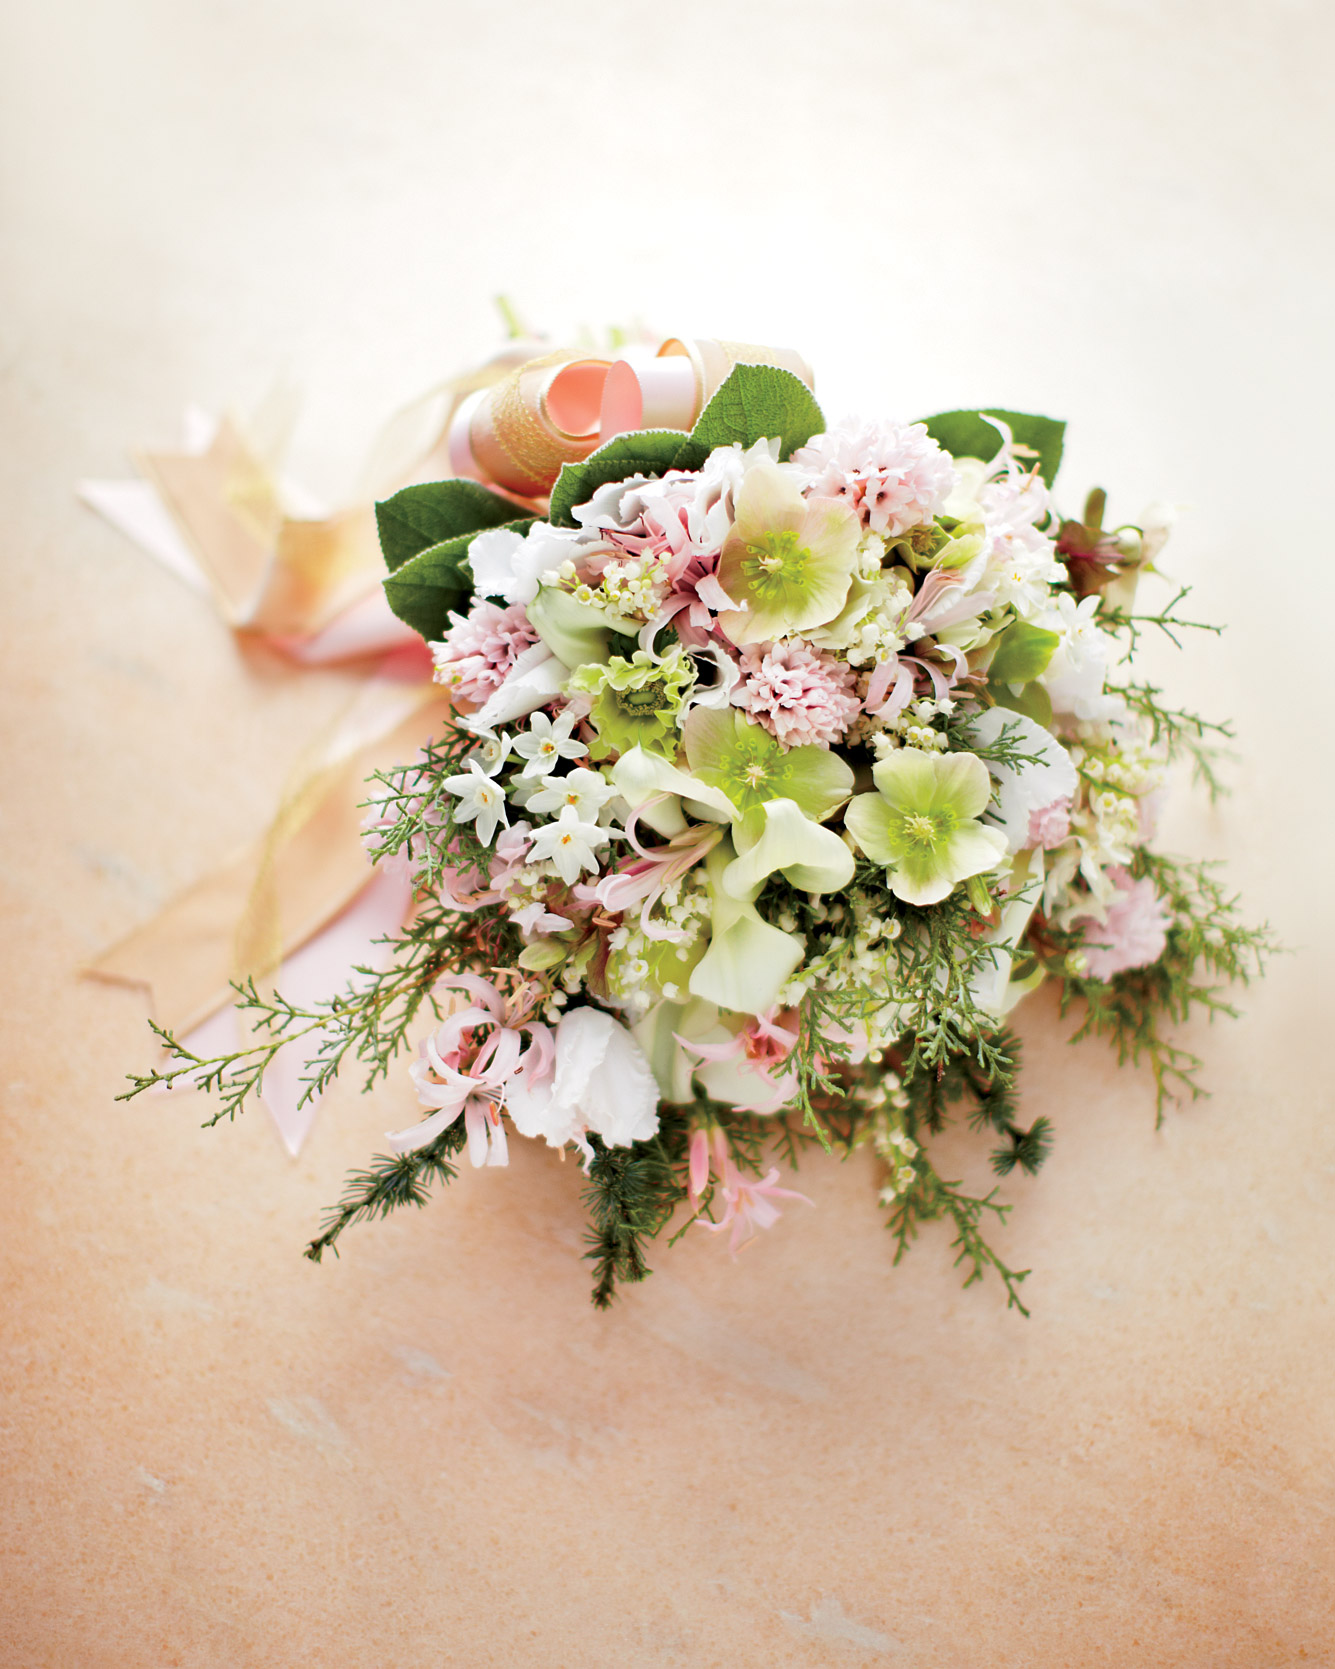 bouquet-mwd107369.jpg